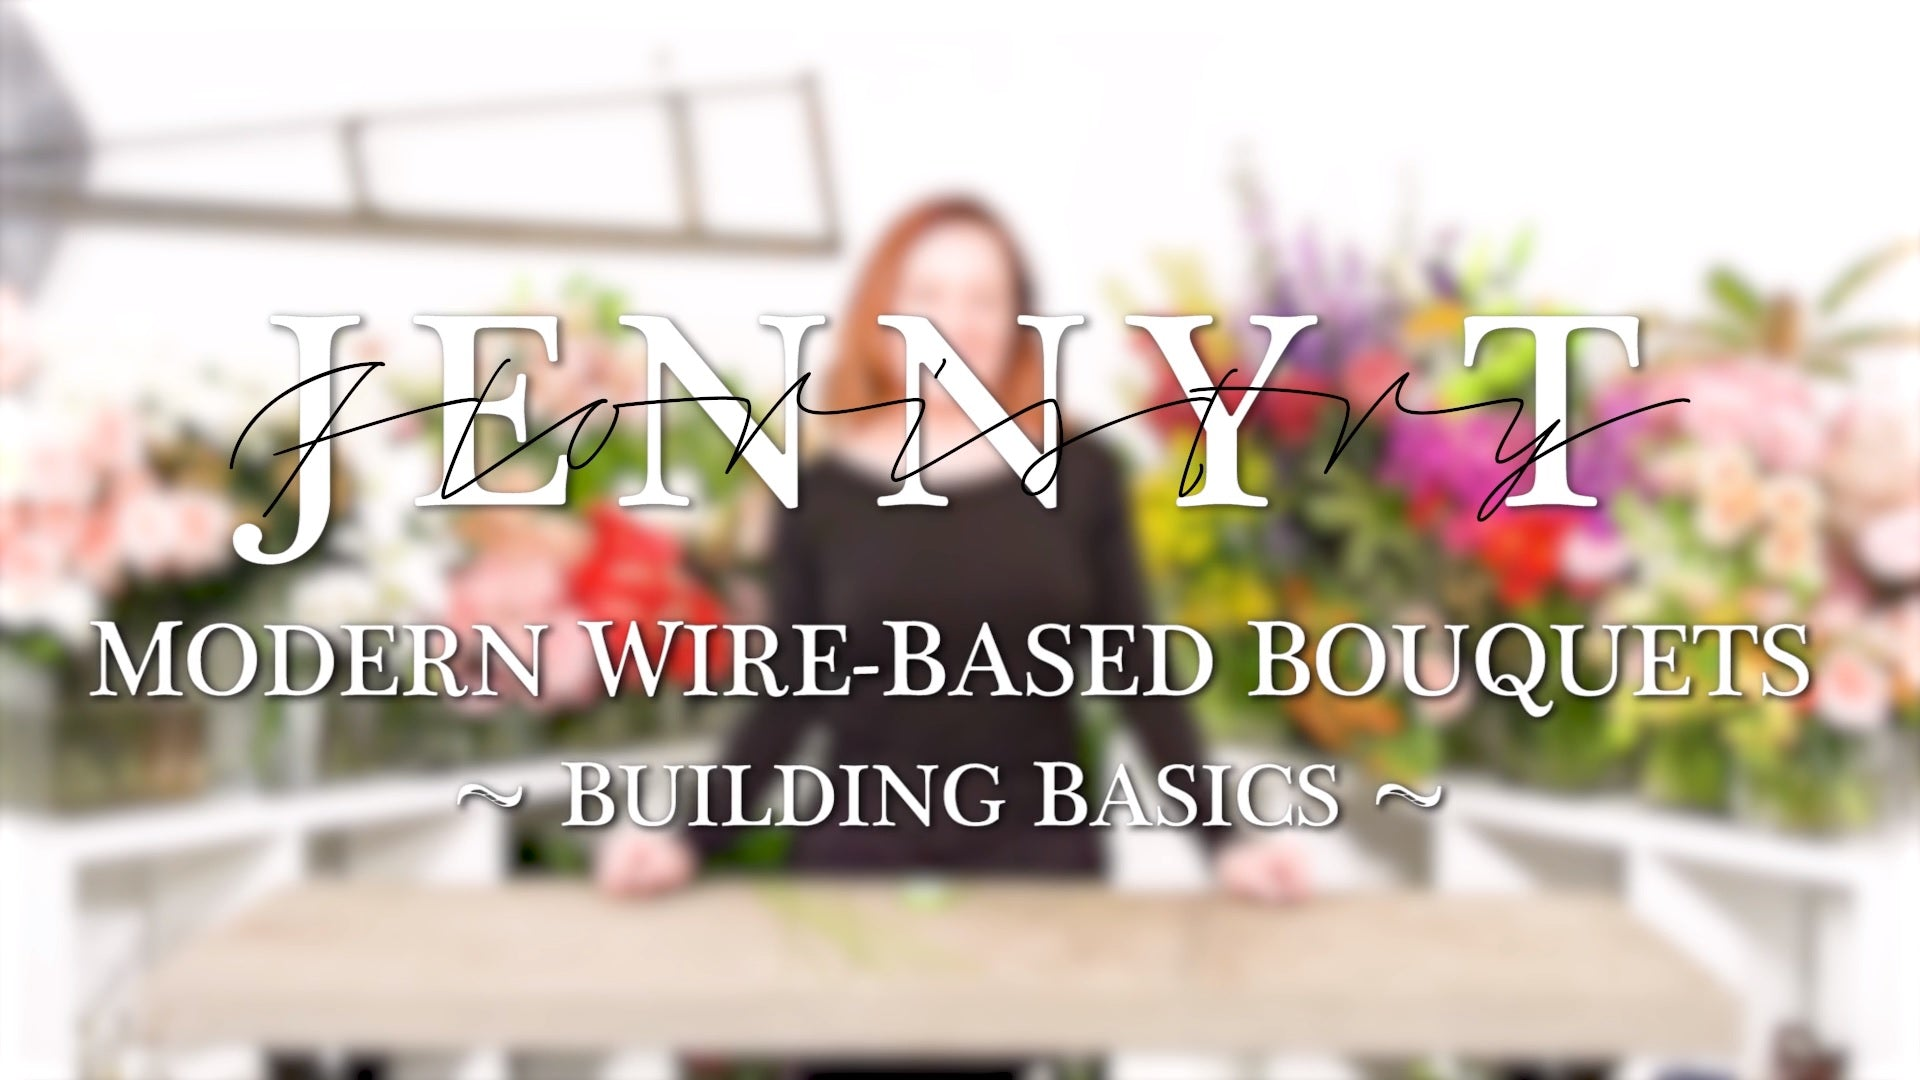 Modern Wire-Based Bouquets